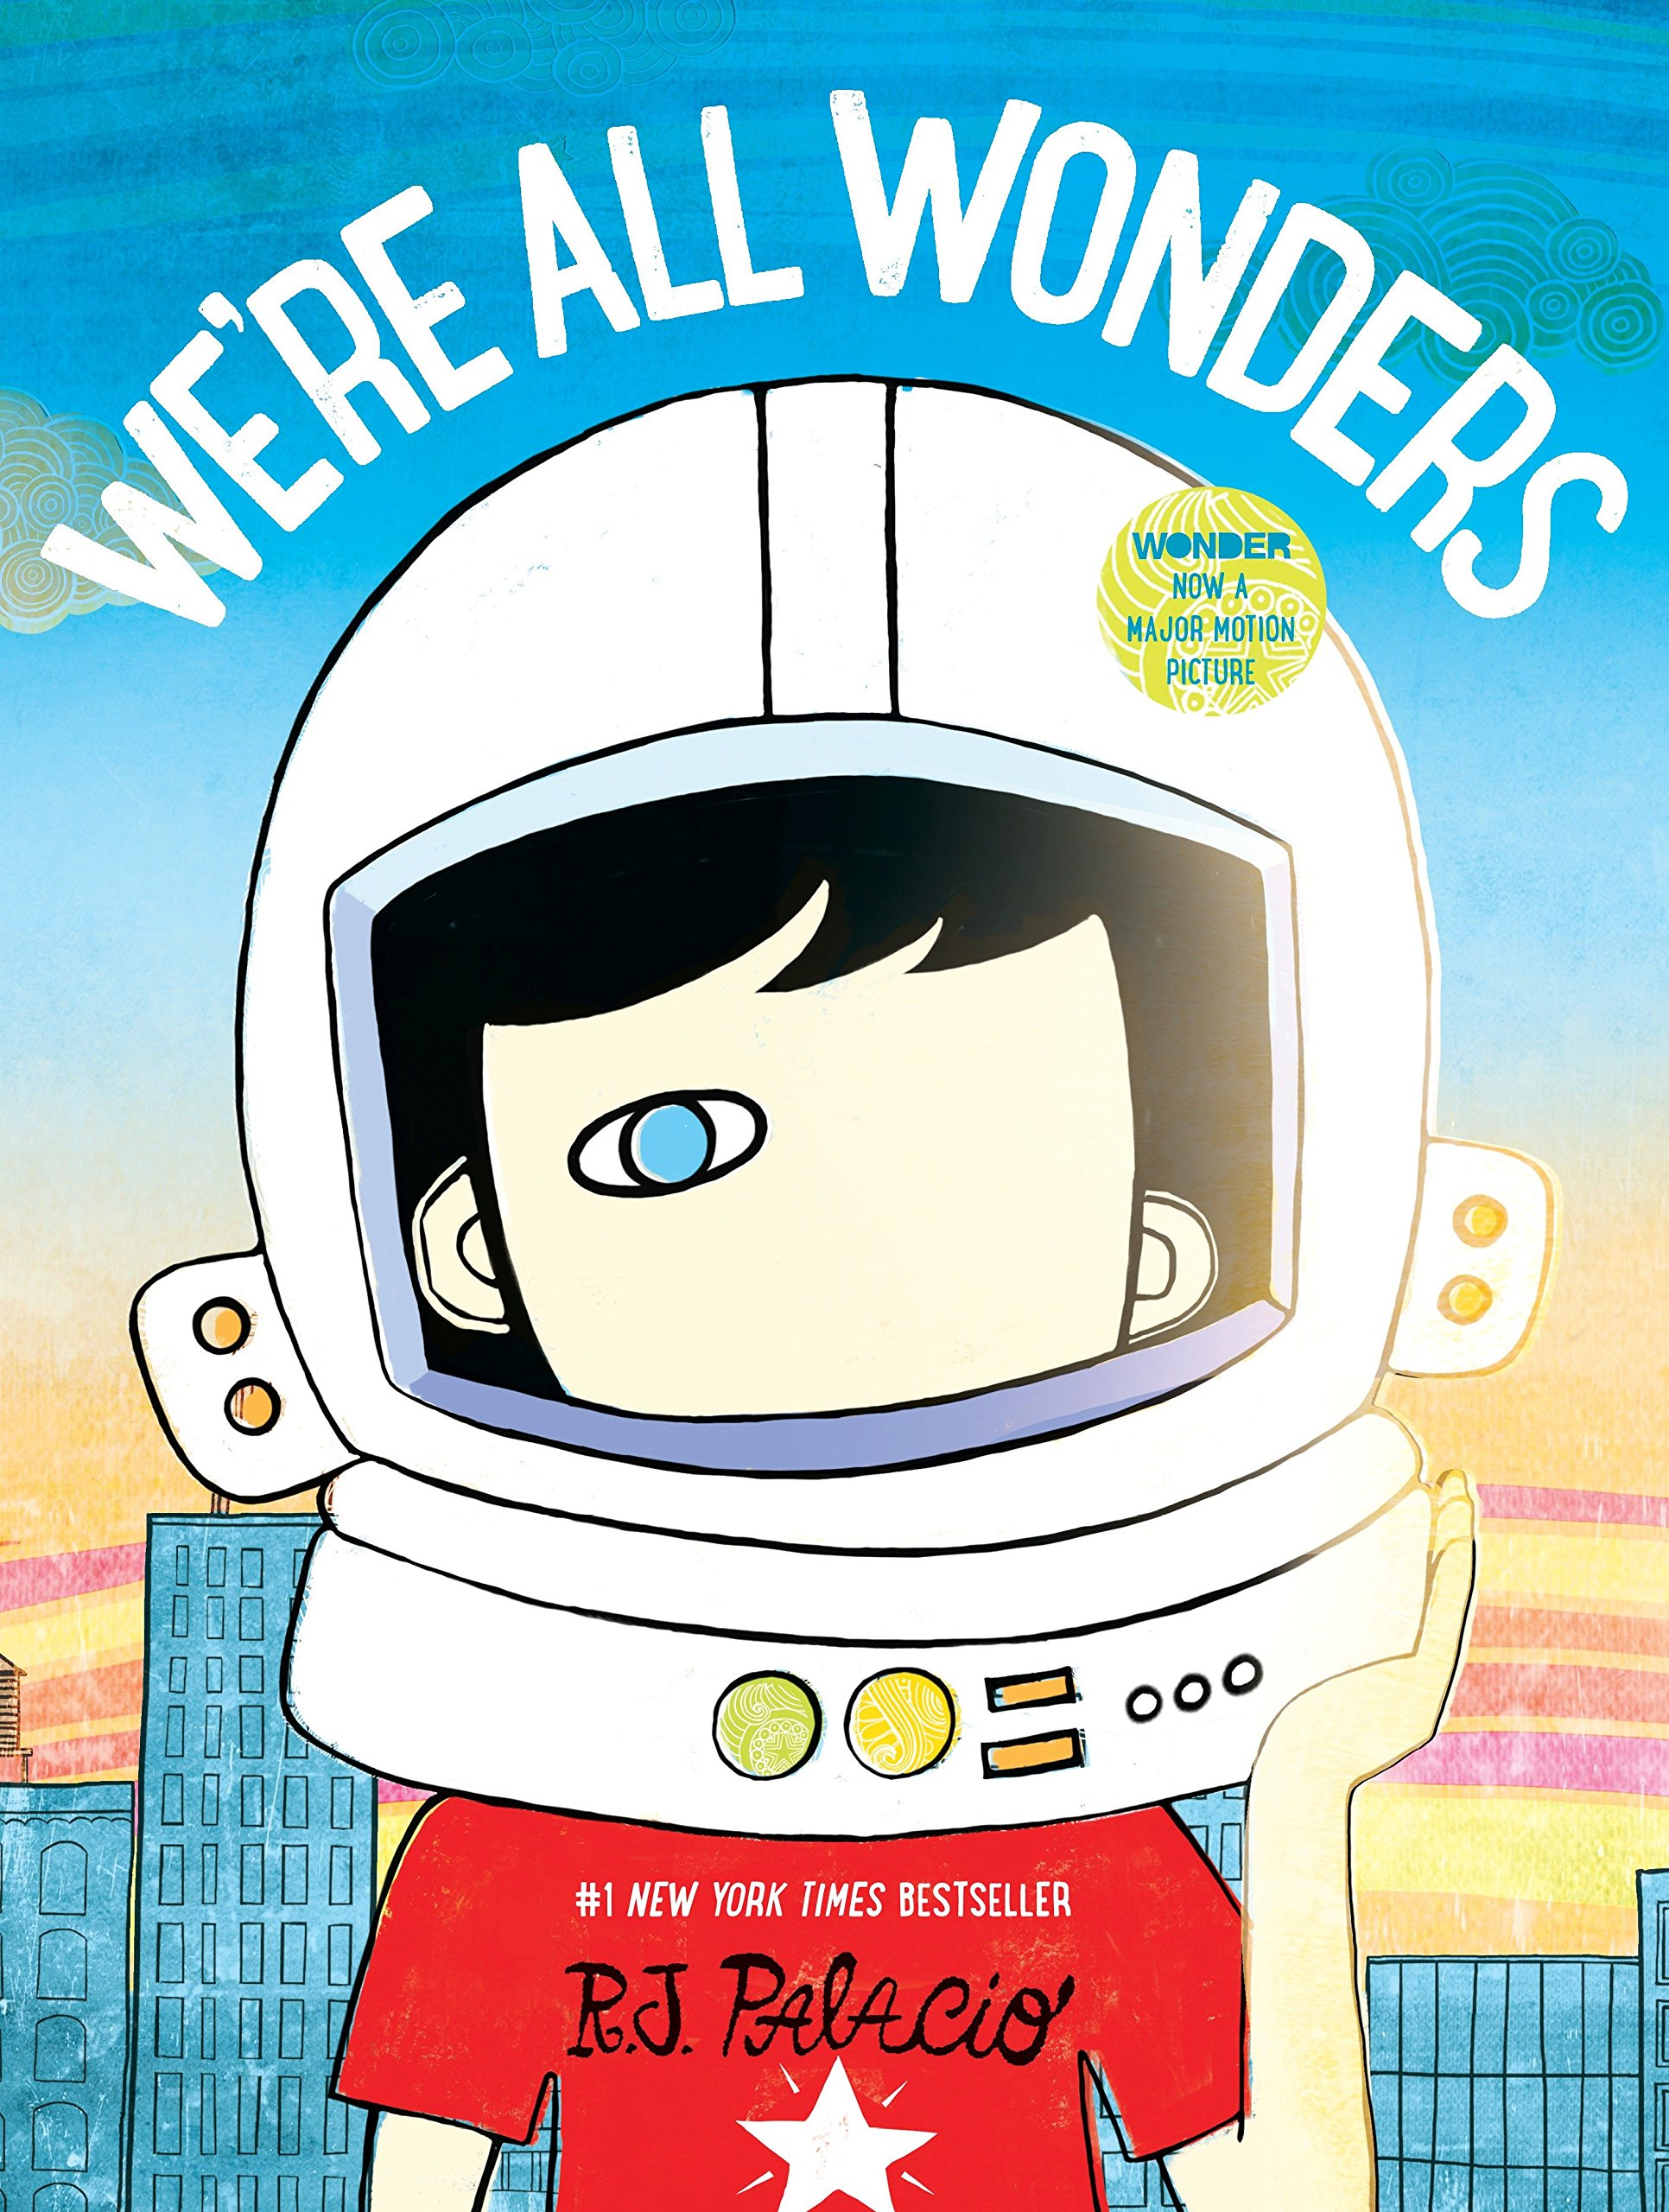 Picture Books that teach empathy to kids  - we're all wonders.jpg